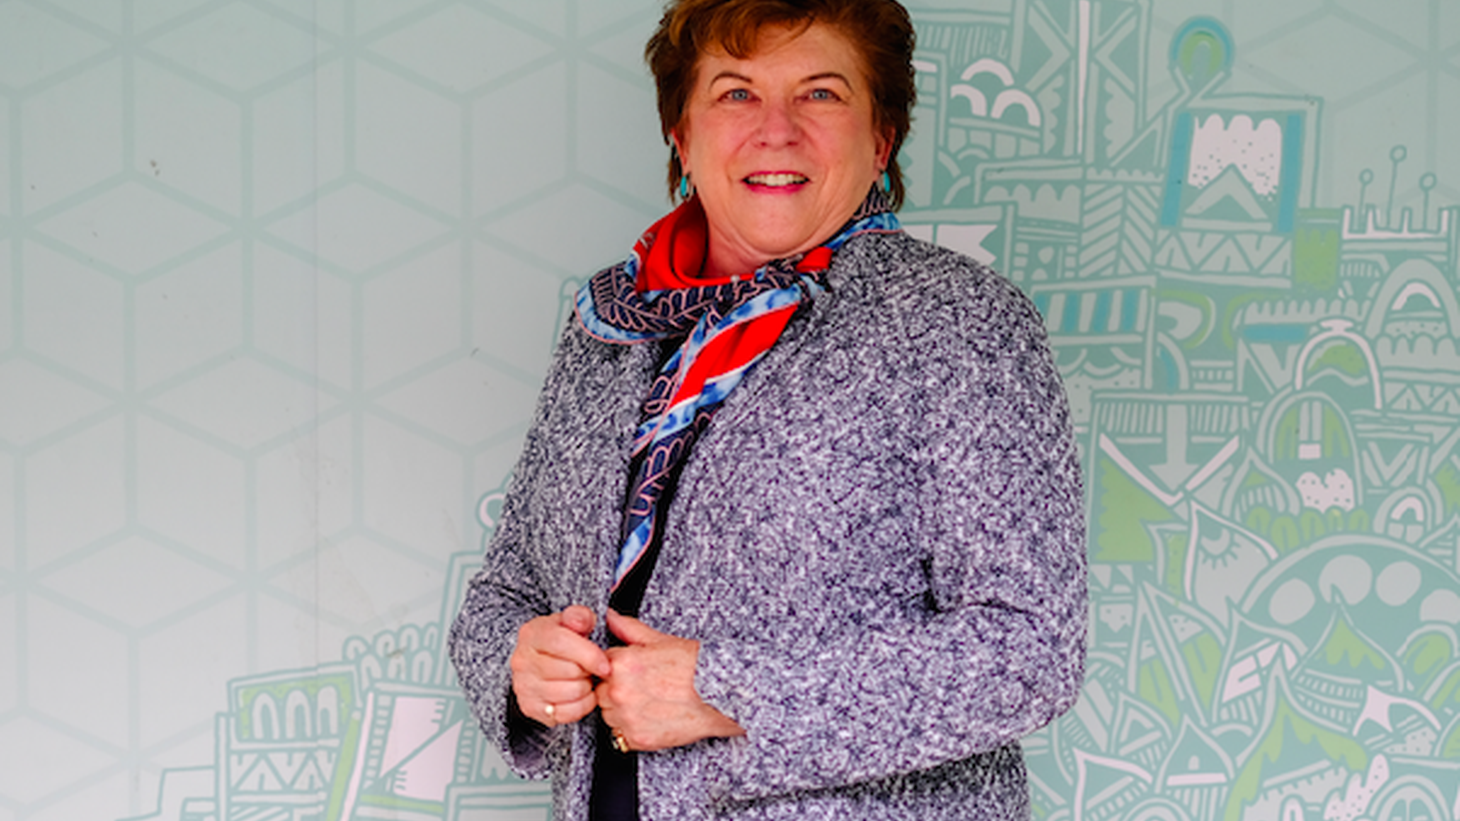 In the weeks leading up to the   June 5   primary, Press Play is speaking with the top candidates running for governor. We start with Delaine Eastin, who served two terms as State Superintendent of Public Instruction from 1995 to 2003.